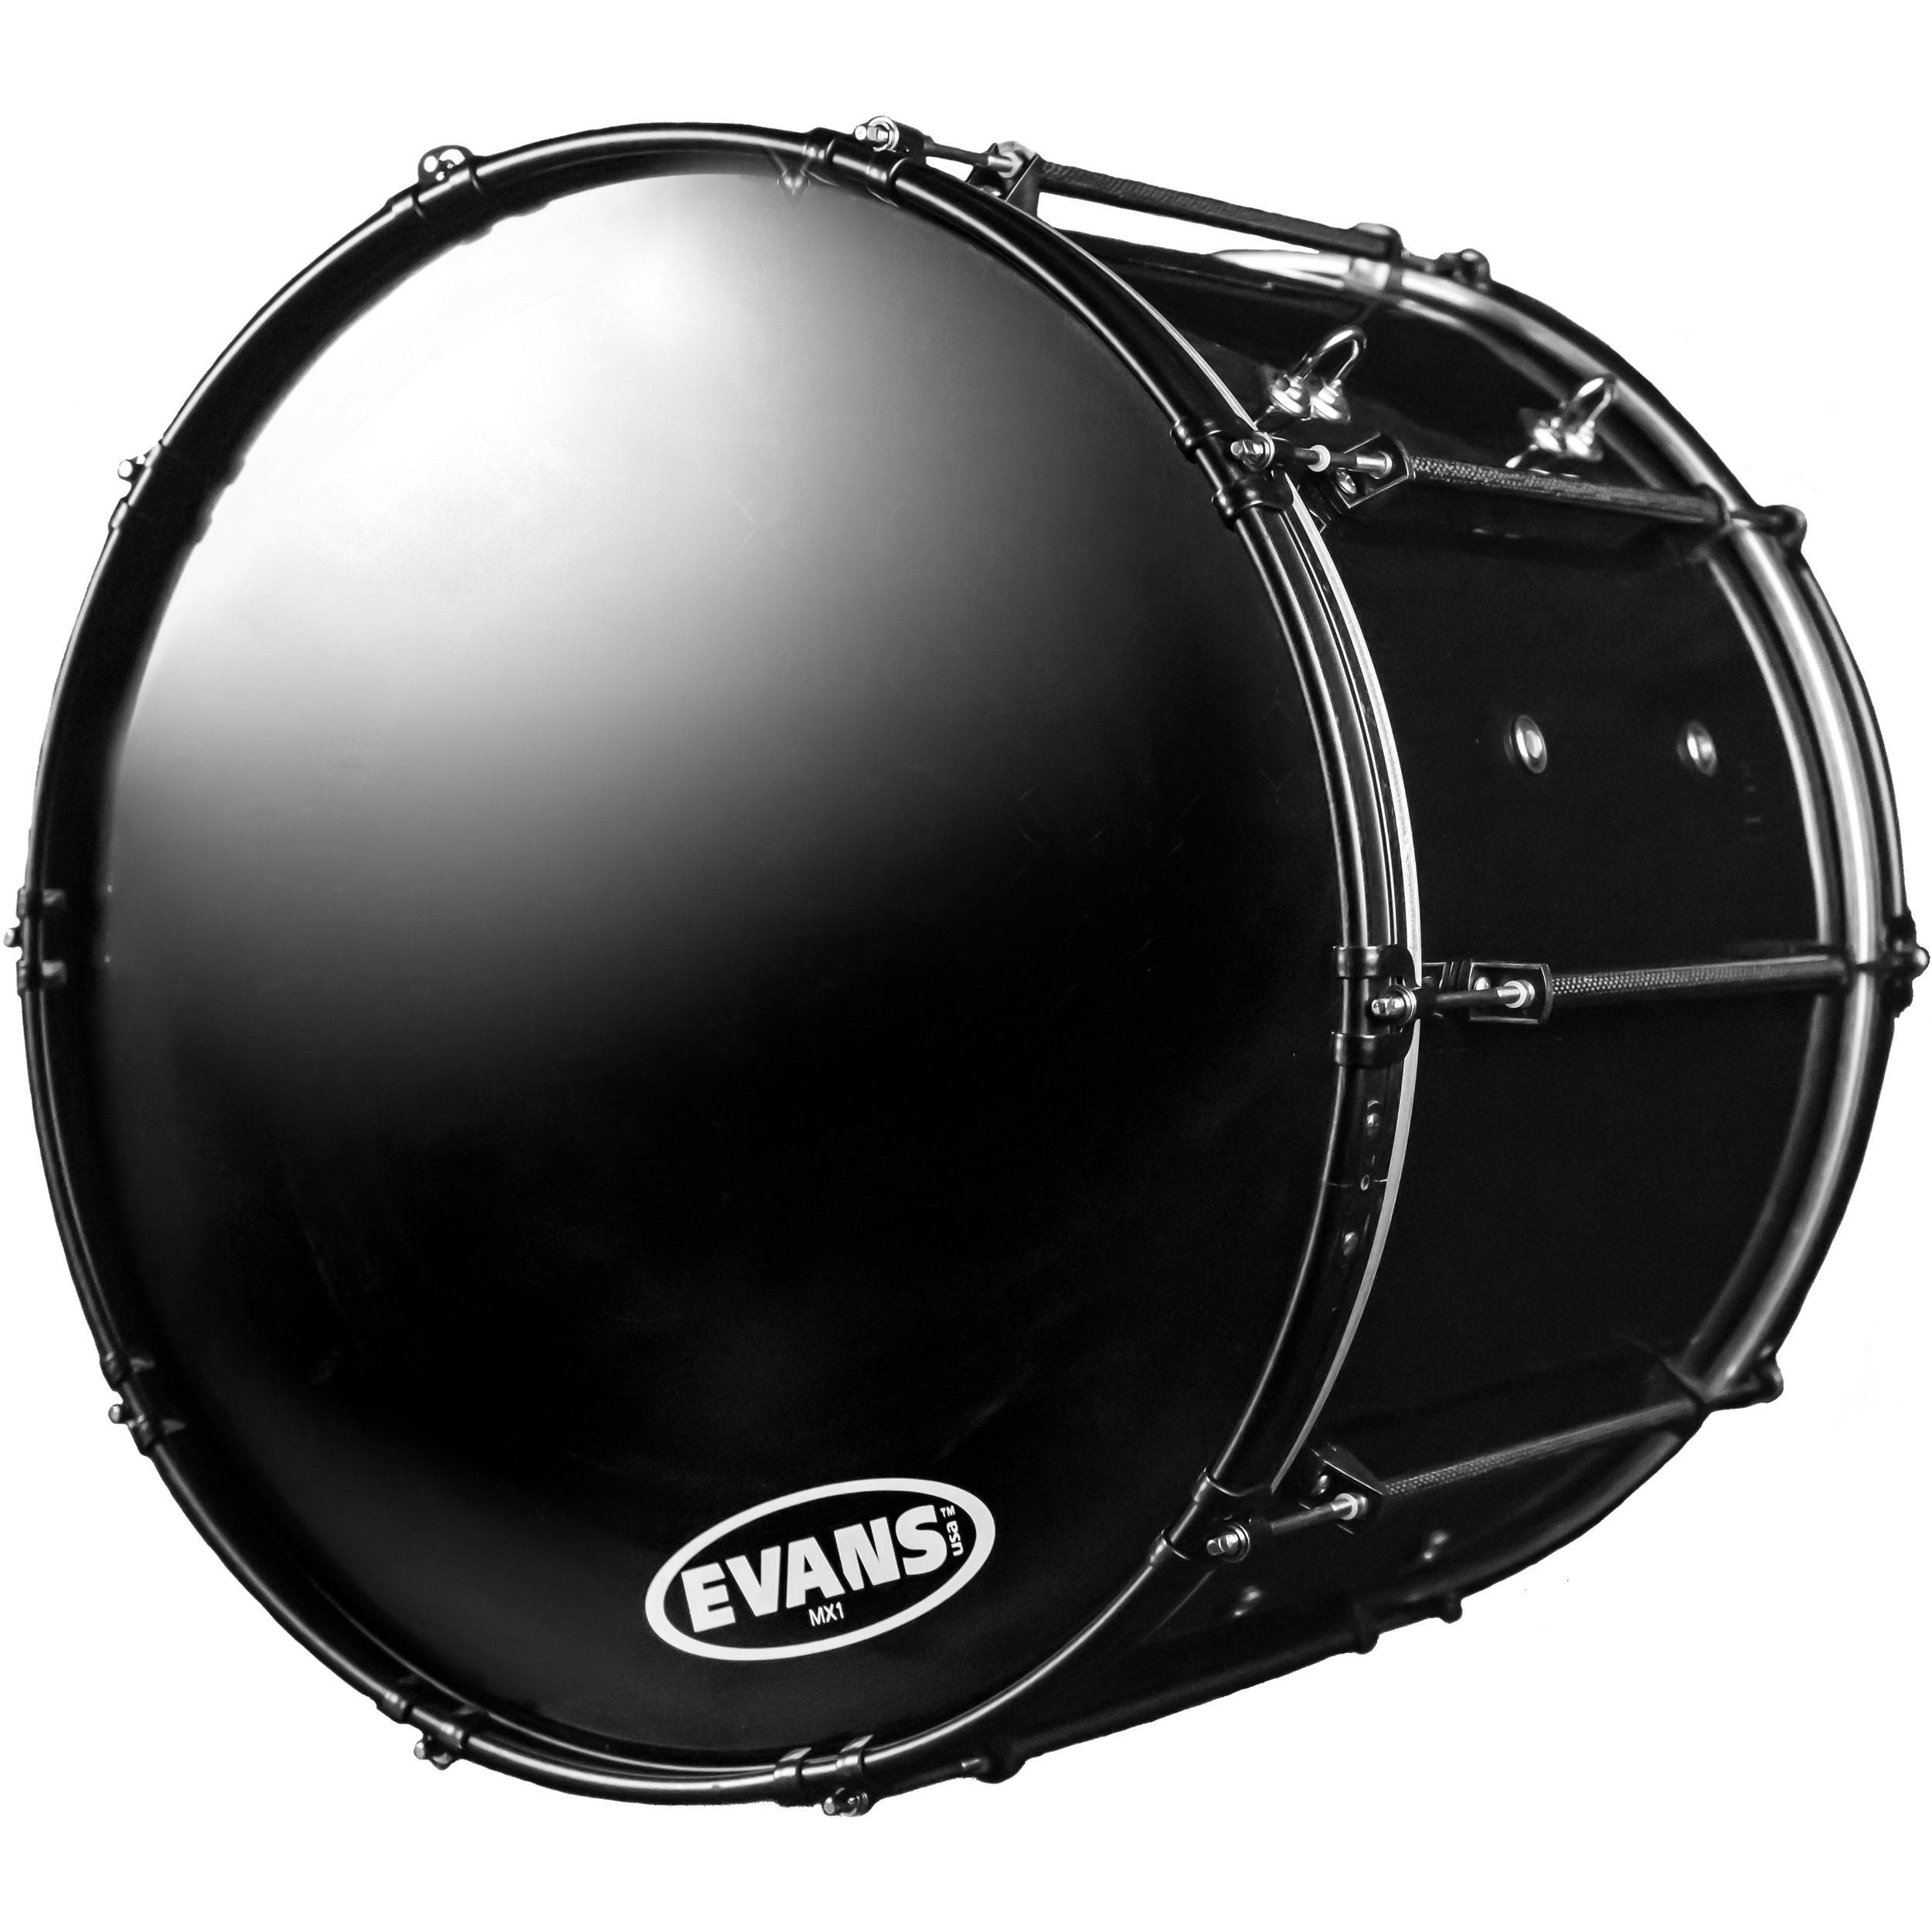 "System Blue 20"" Professional Series Marching Bass Drum"